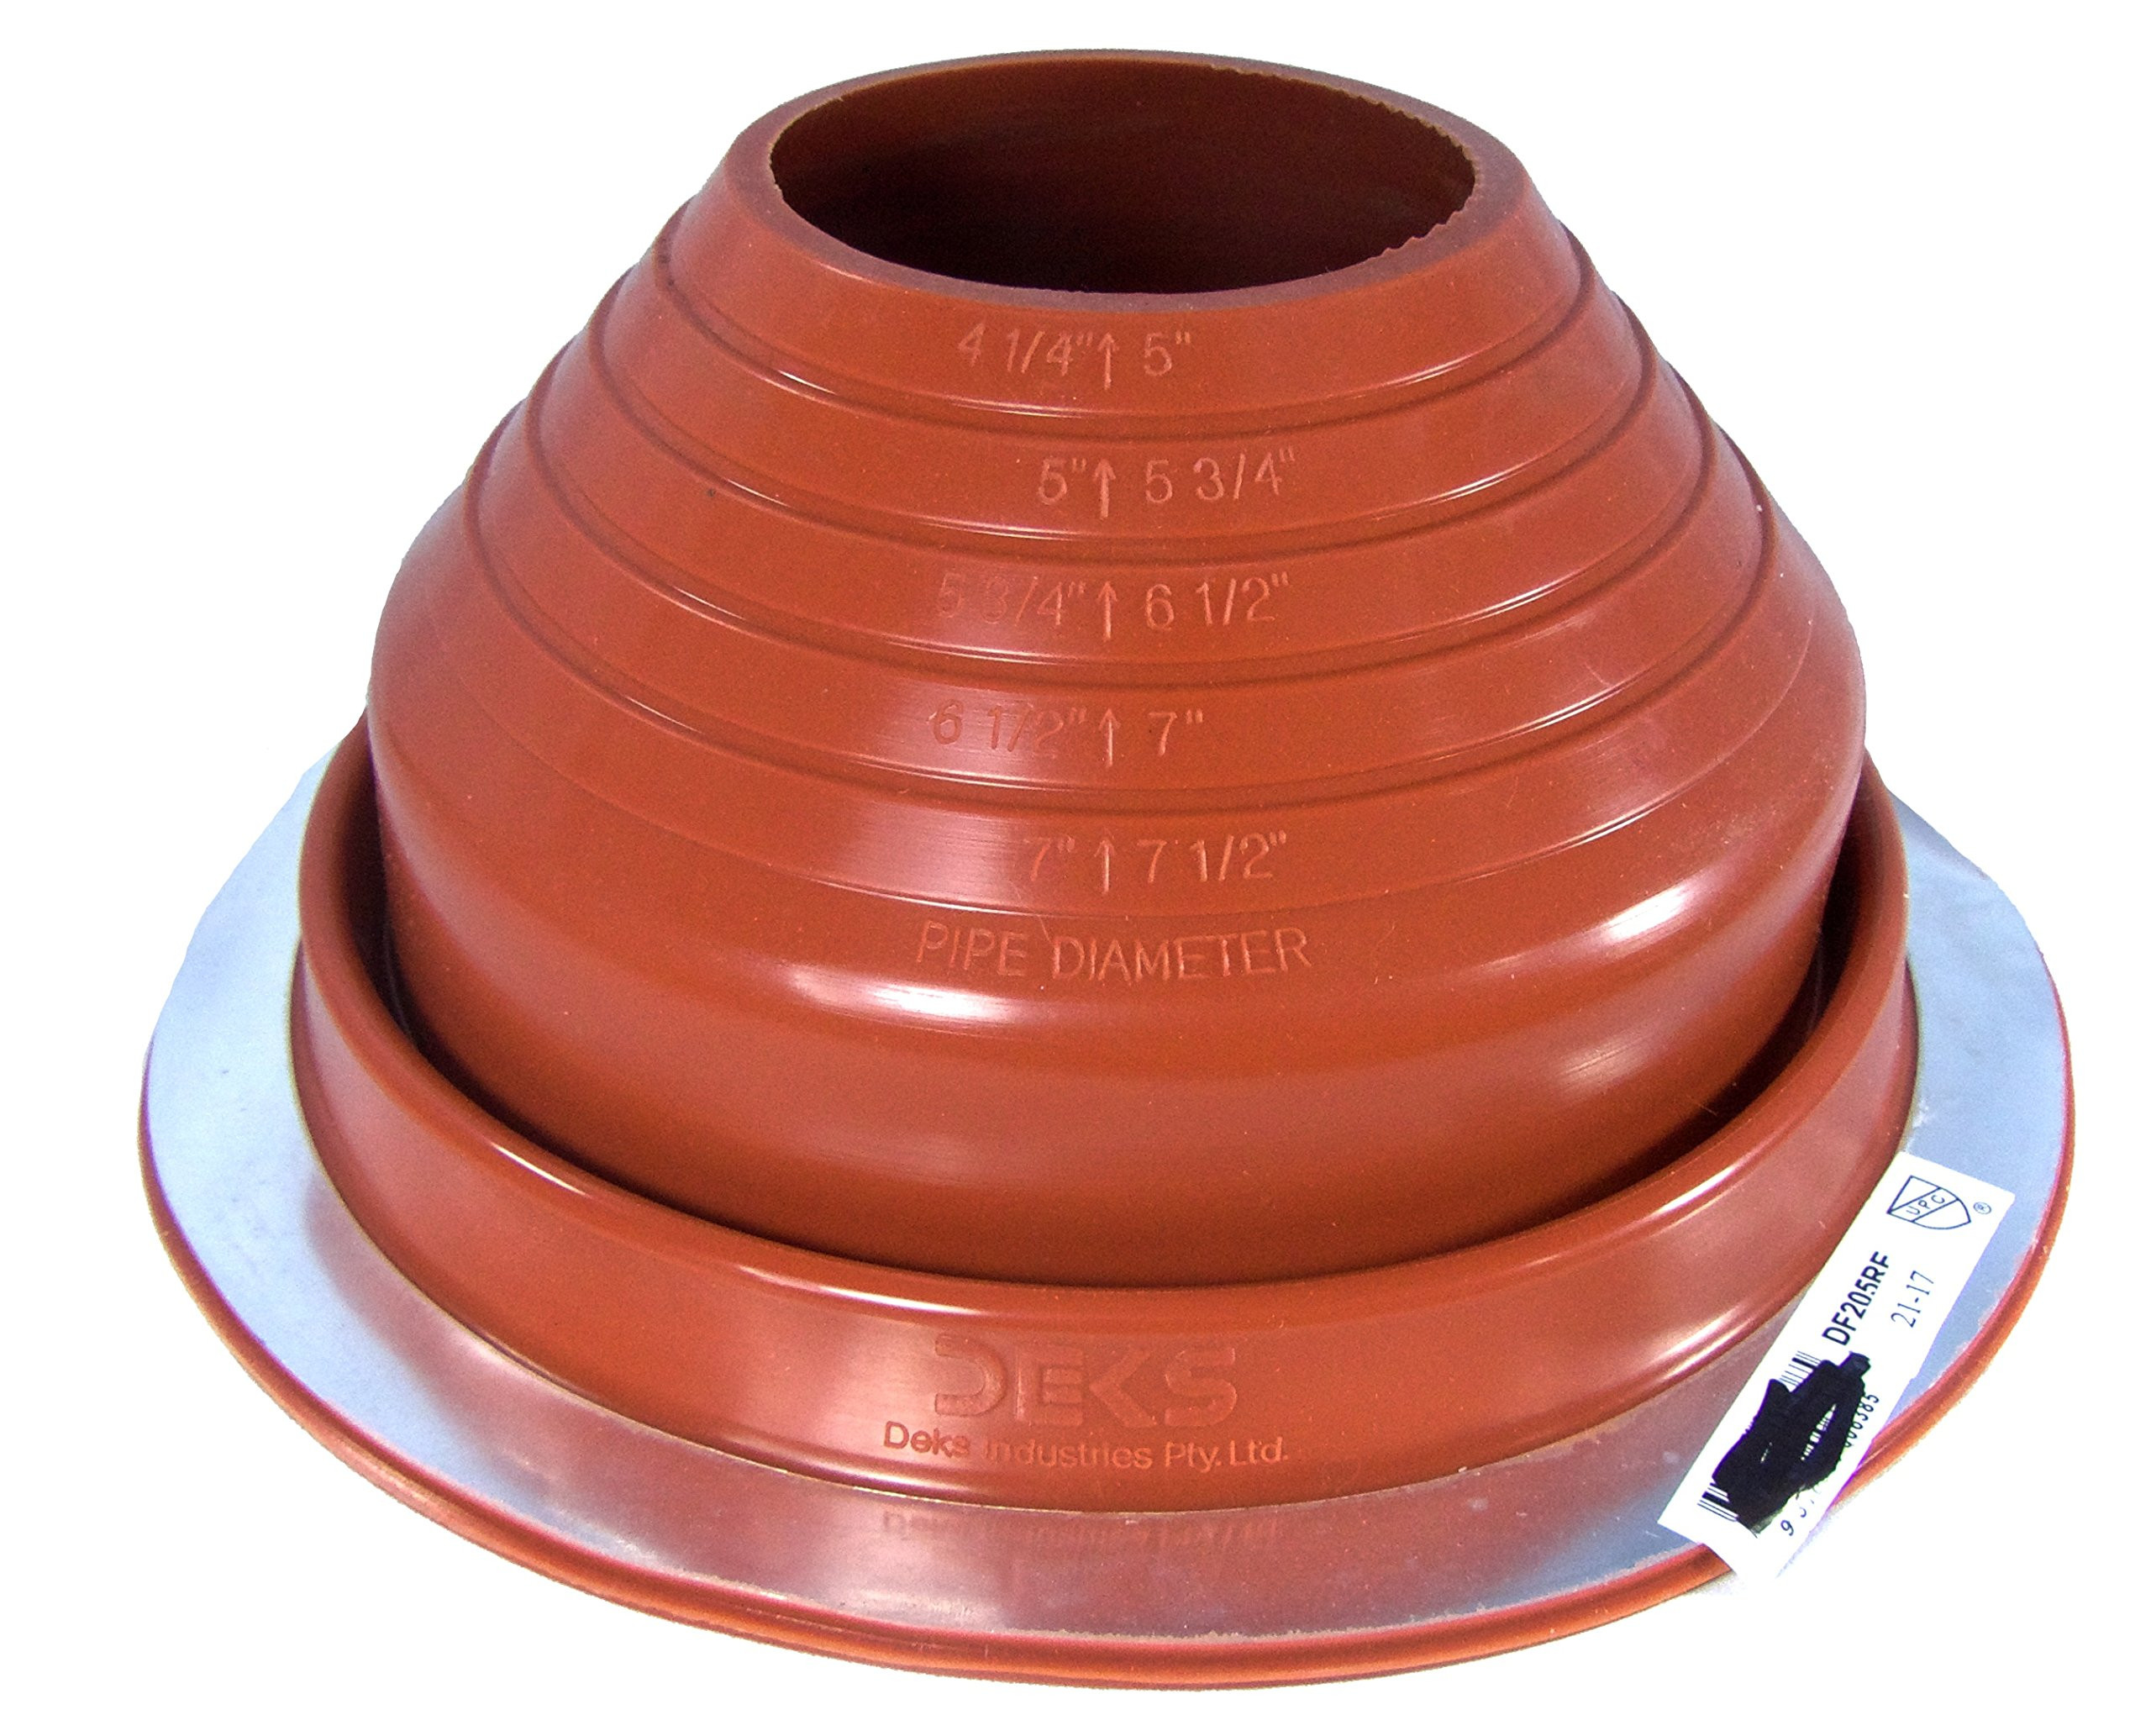 17 Ideal 24 Inch Square Vase 2021 free download 24 inch square vase of best rated in roof flashings helpful customer reviews amazon com with regard to dektite 5 red silicone metal roof pipe flashing round base pipe od 4 1 4 7 1 2